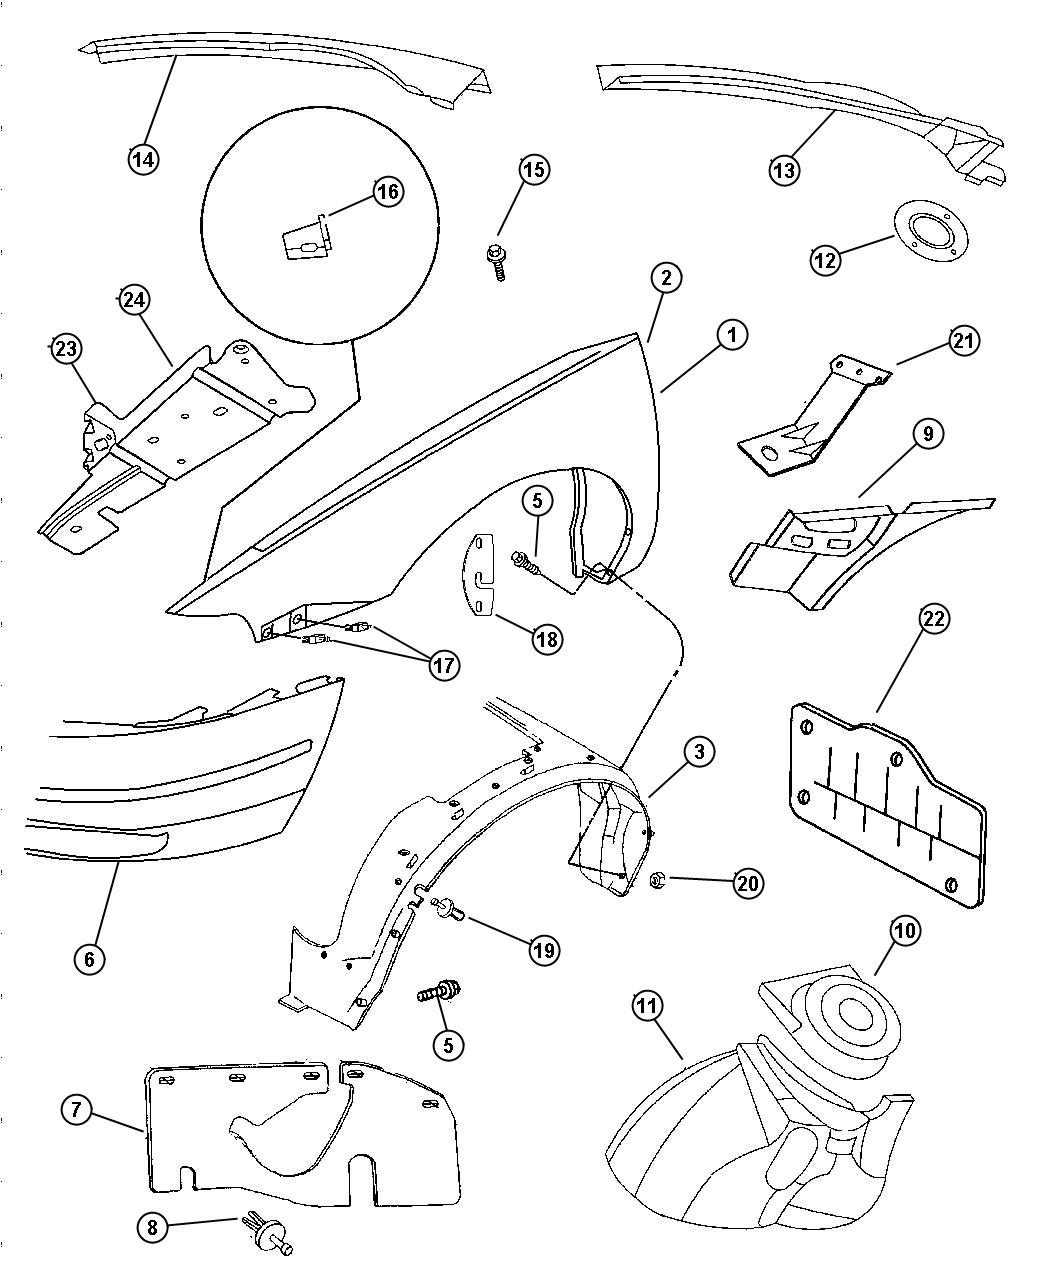 Service manual [1997 Geo Tracker Splash Shield